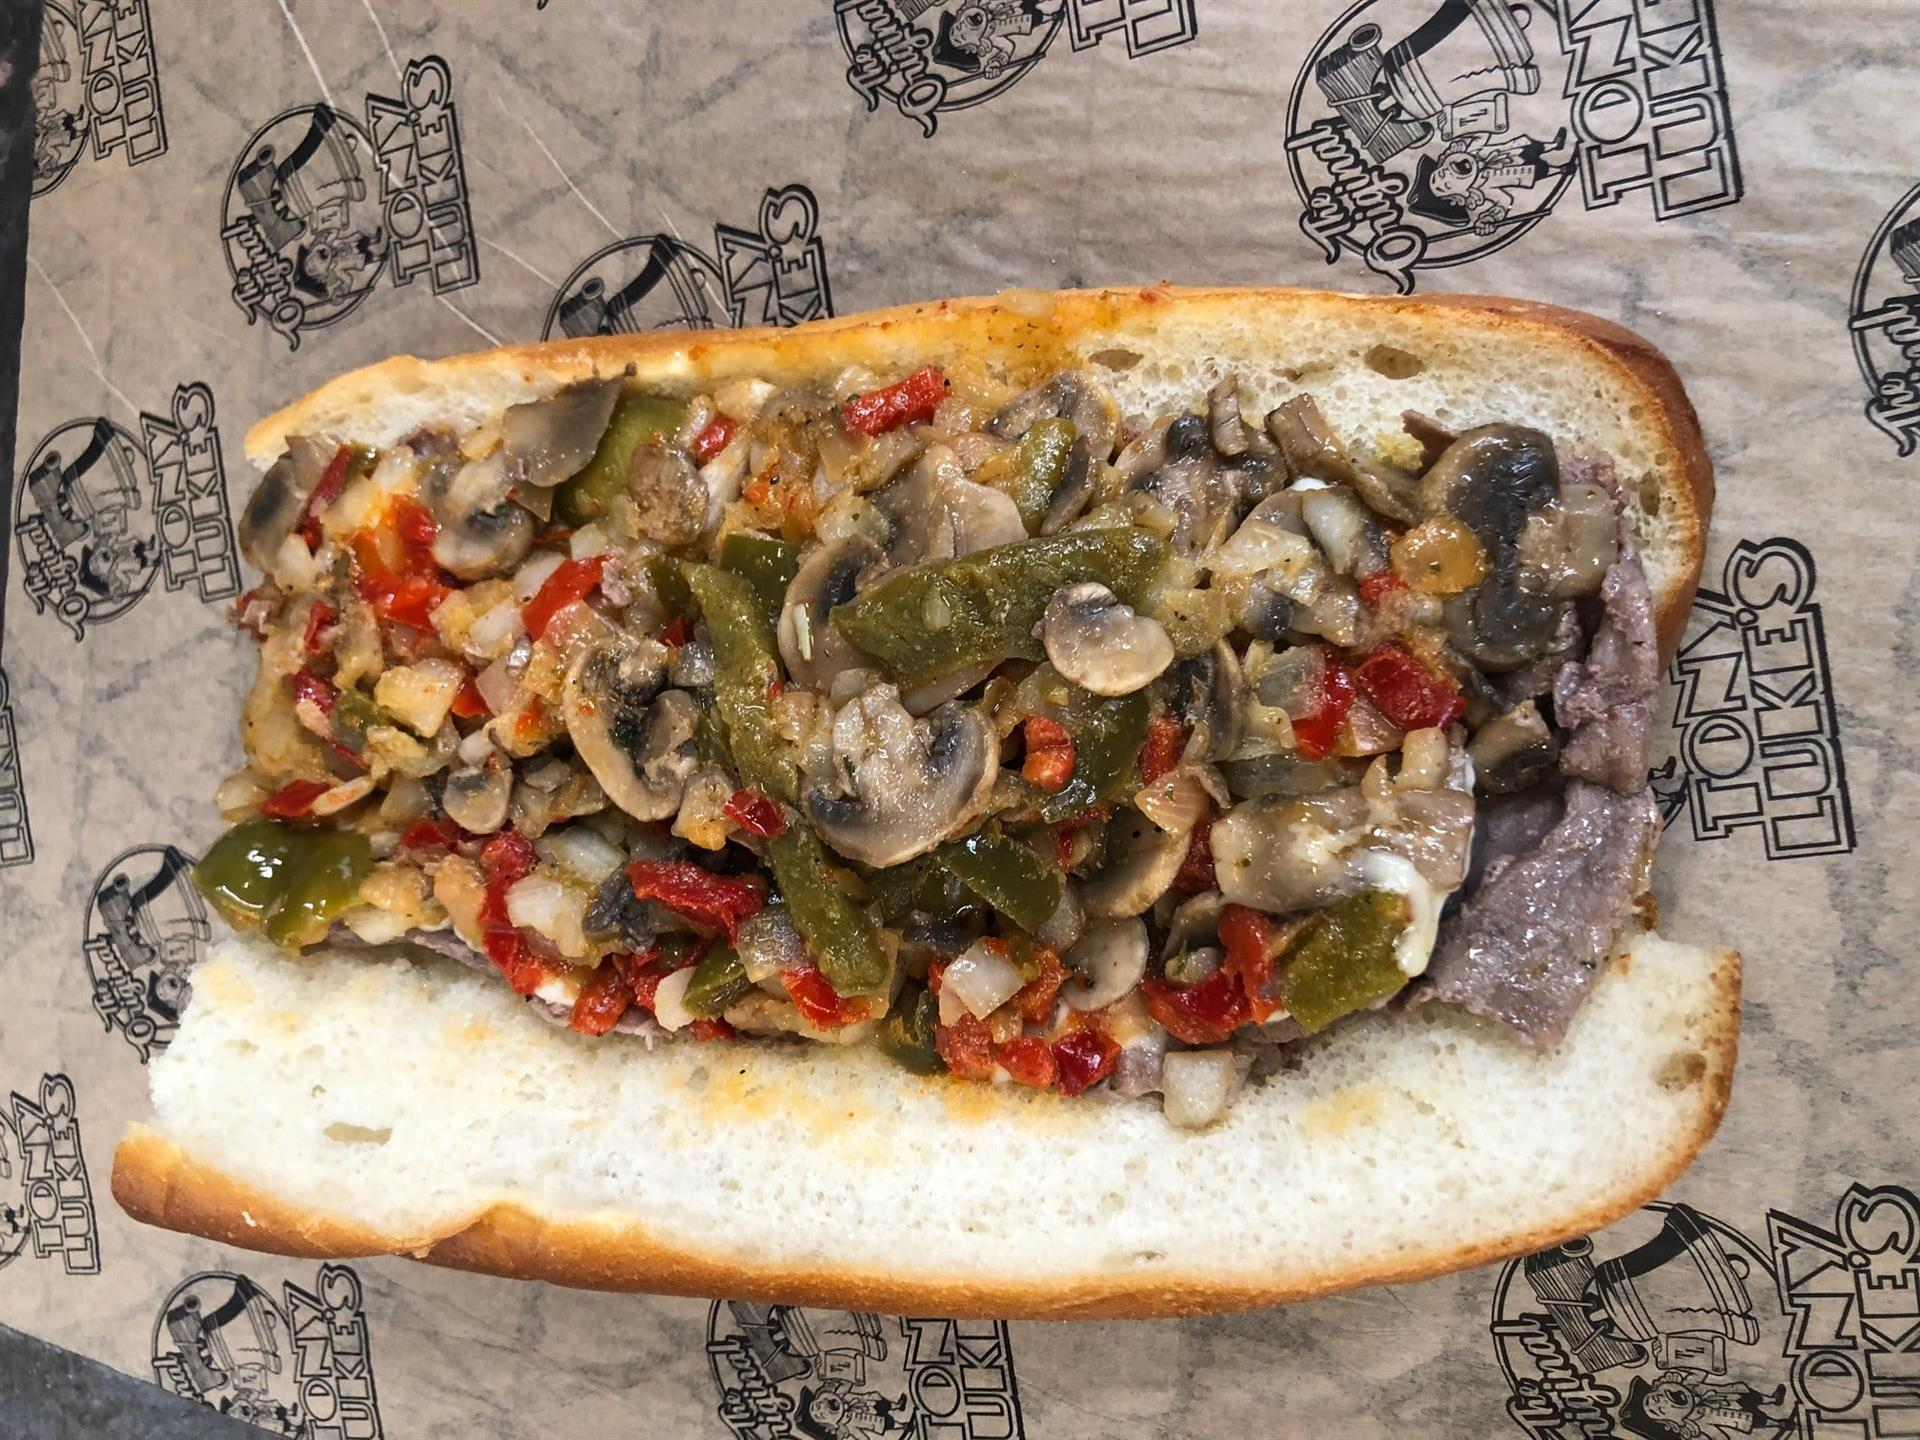 Philly Cheesesteak with mushrooms, sausage, and peppers